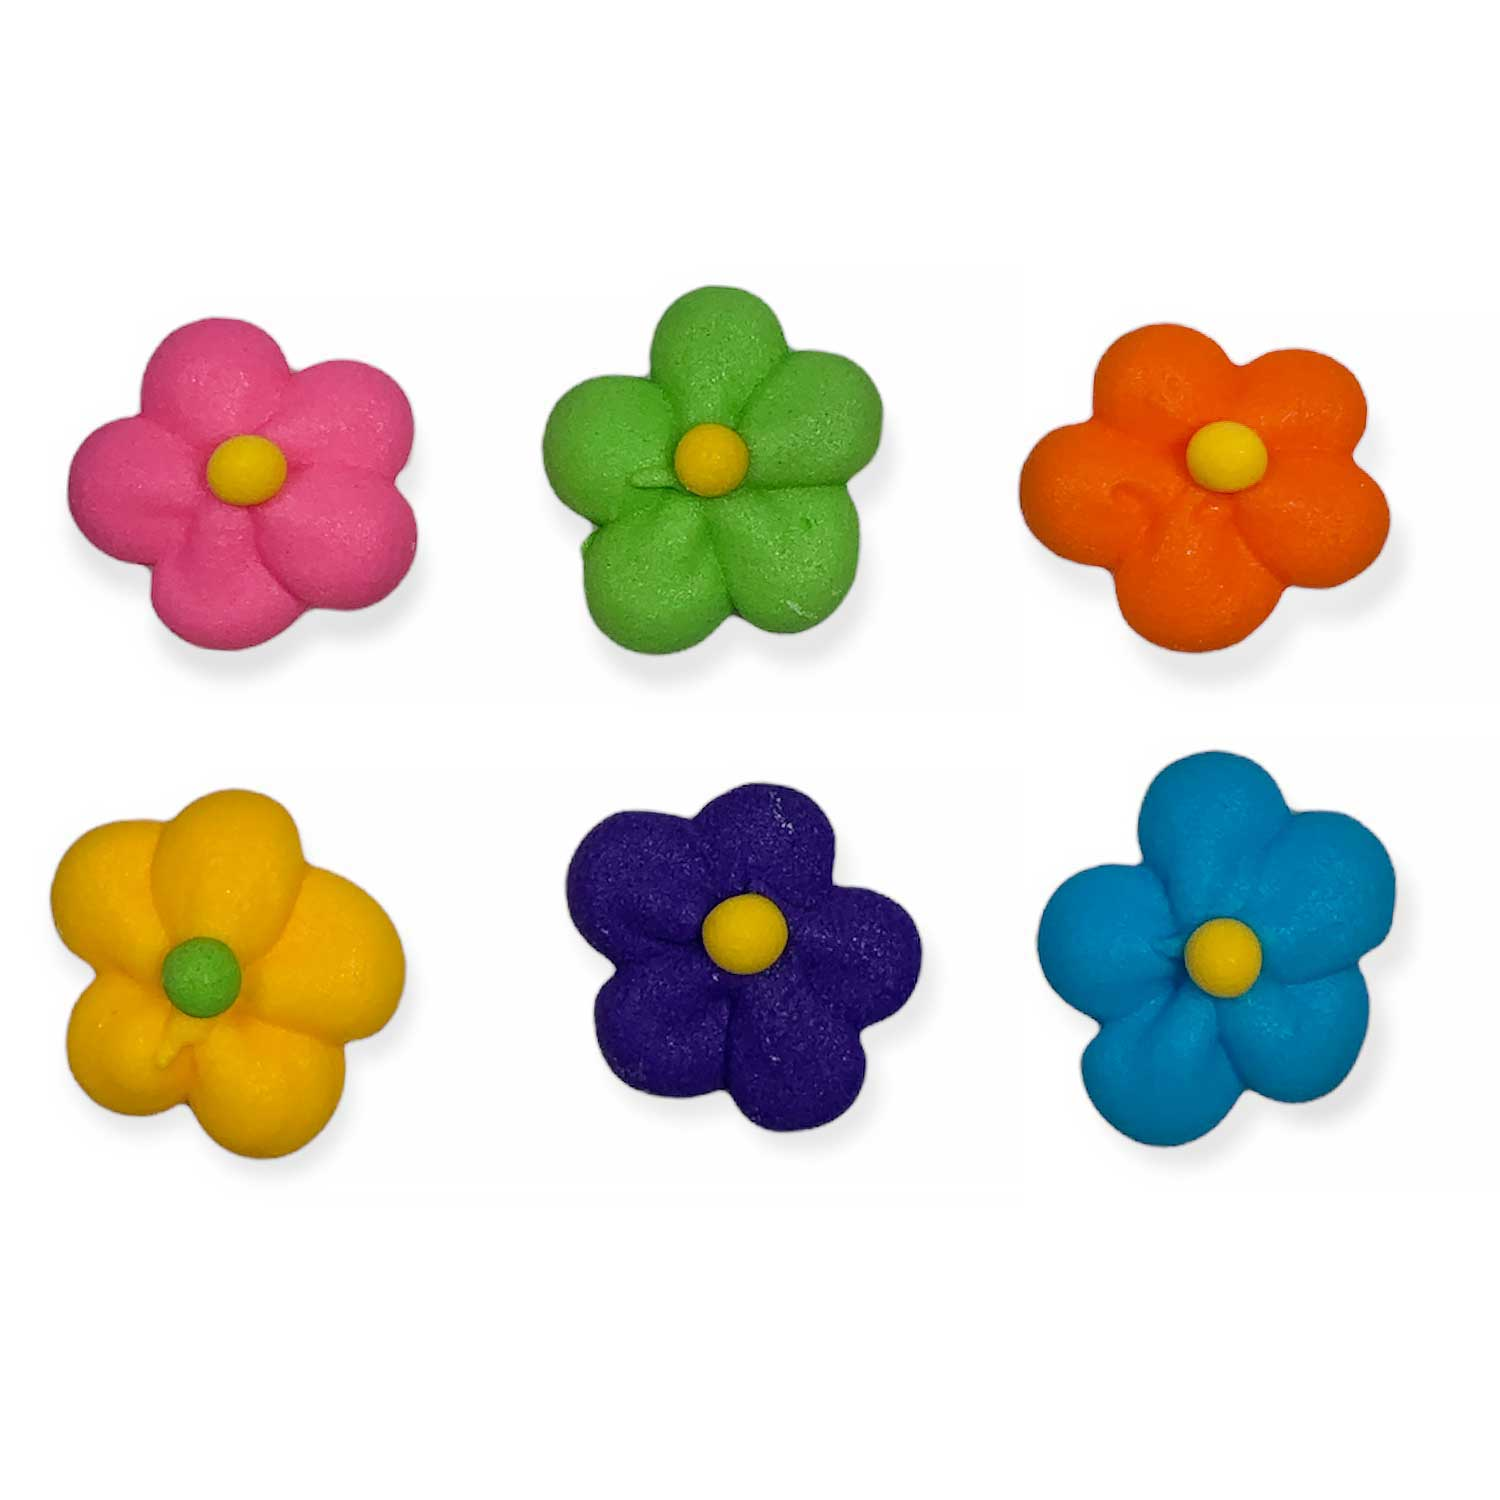 Icing Layons - Mini Flower Power